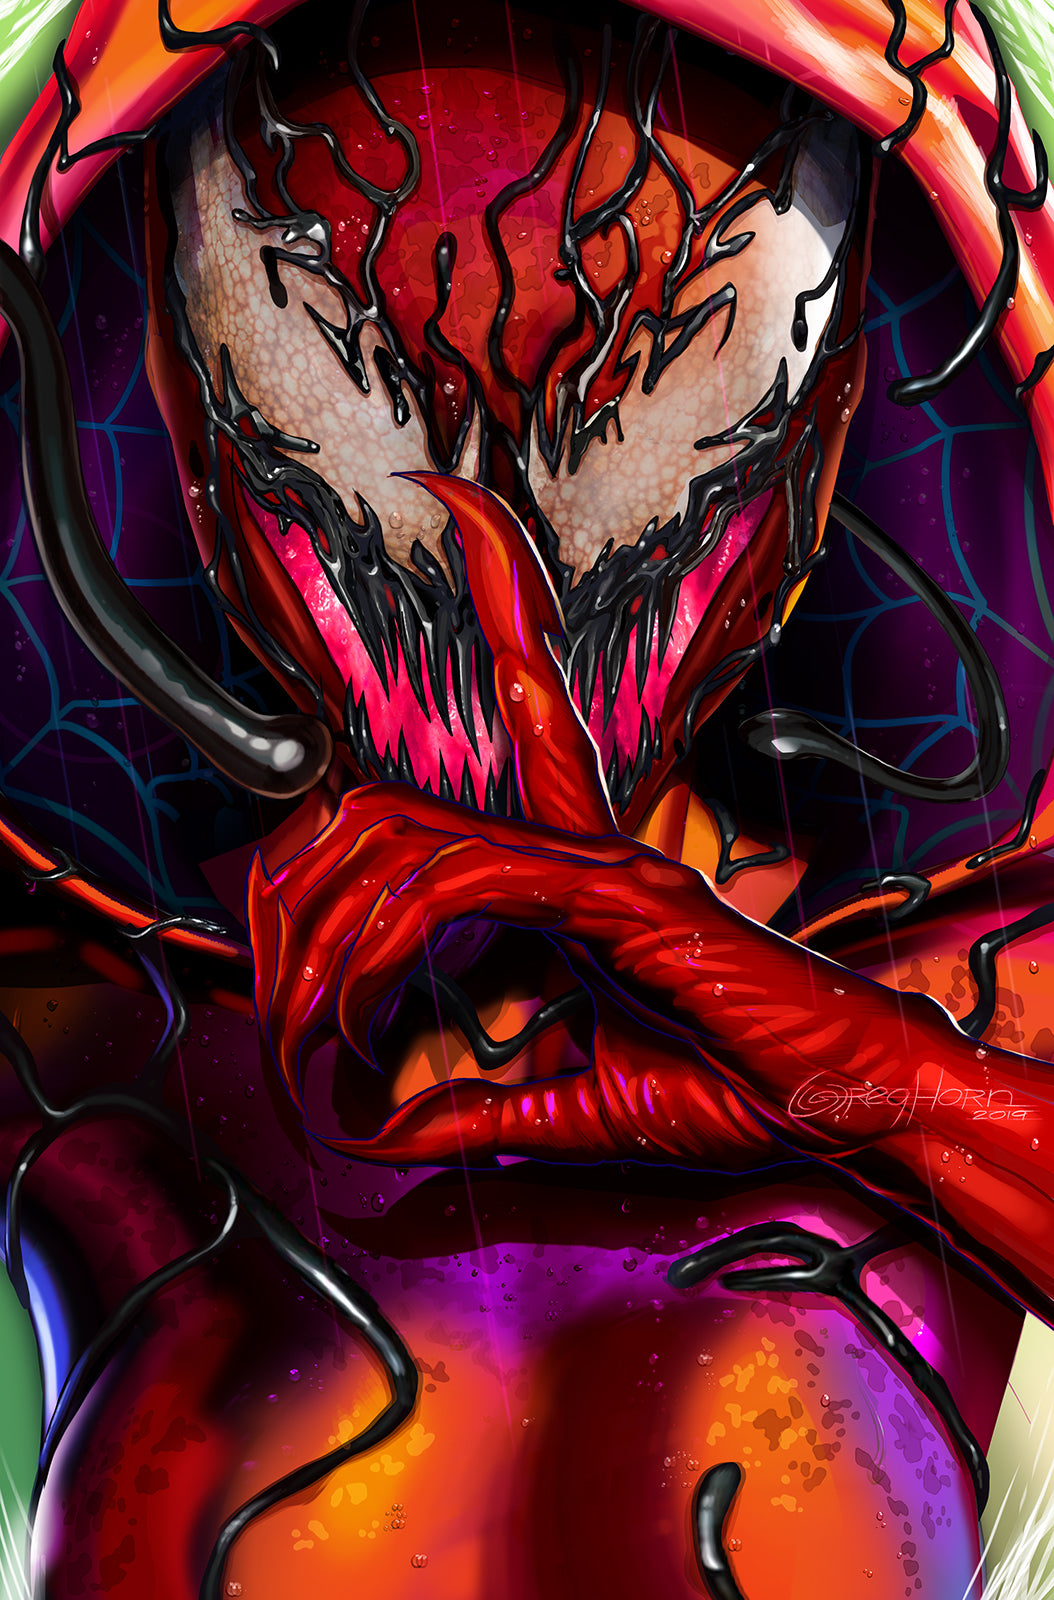 Spider-Verse Gwarnage Carnage - High Quality 11 x 17 Digital Print